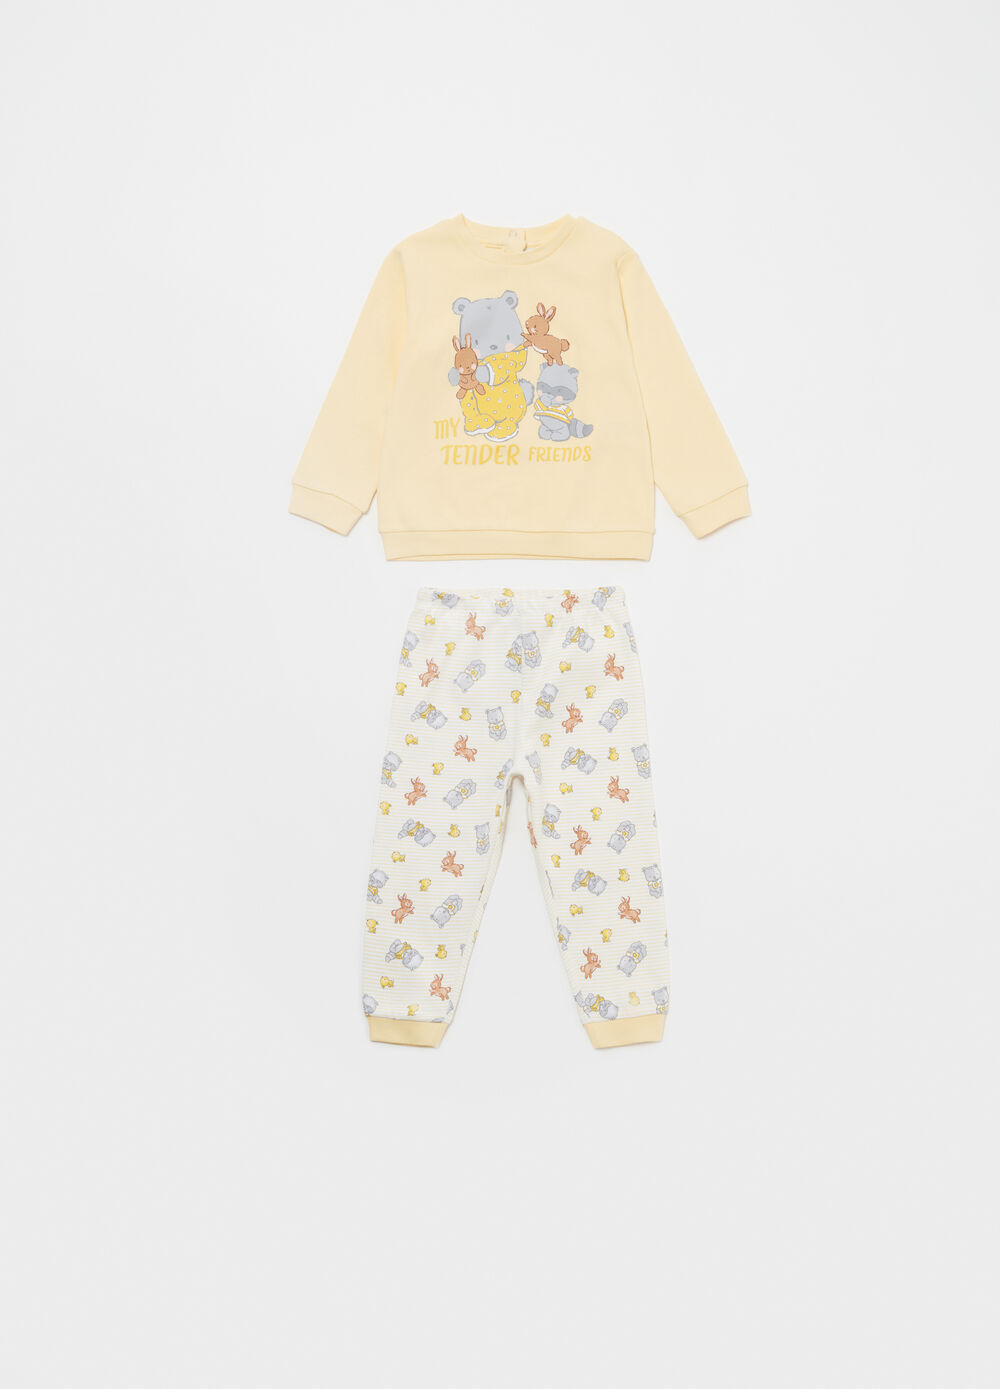 100% cotton pyjamas with animal pattern